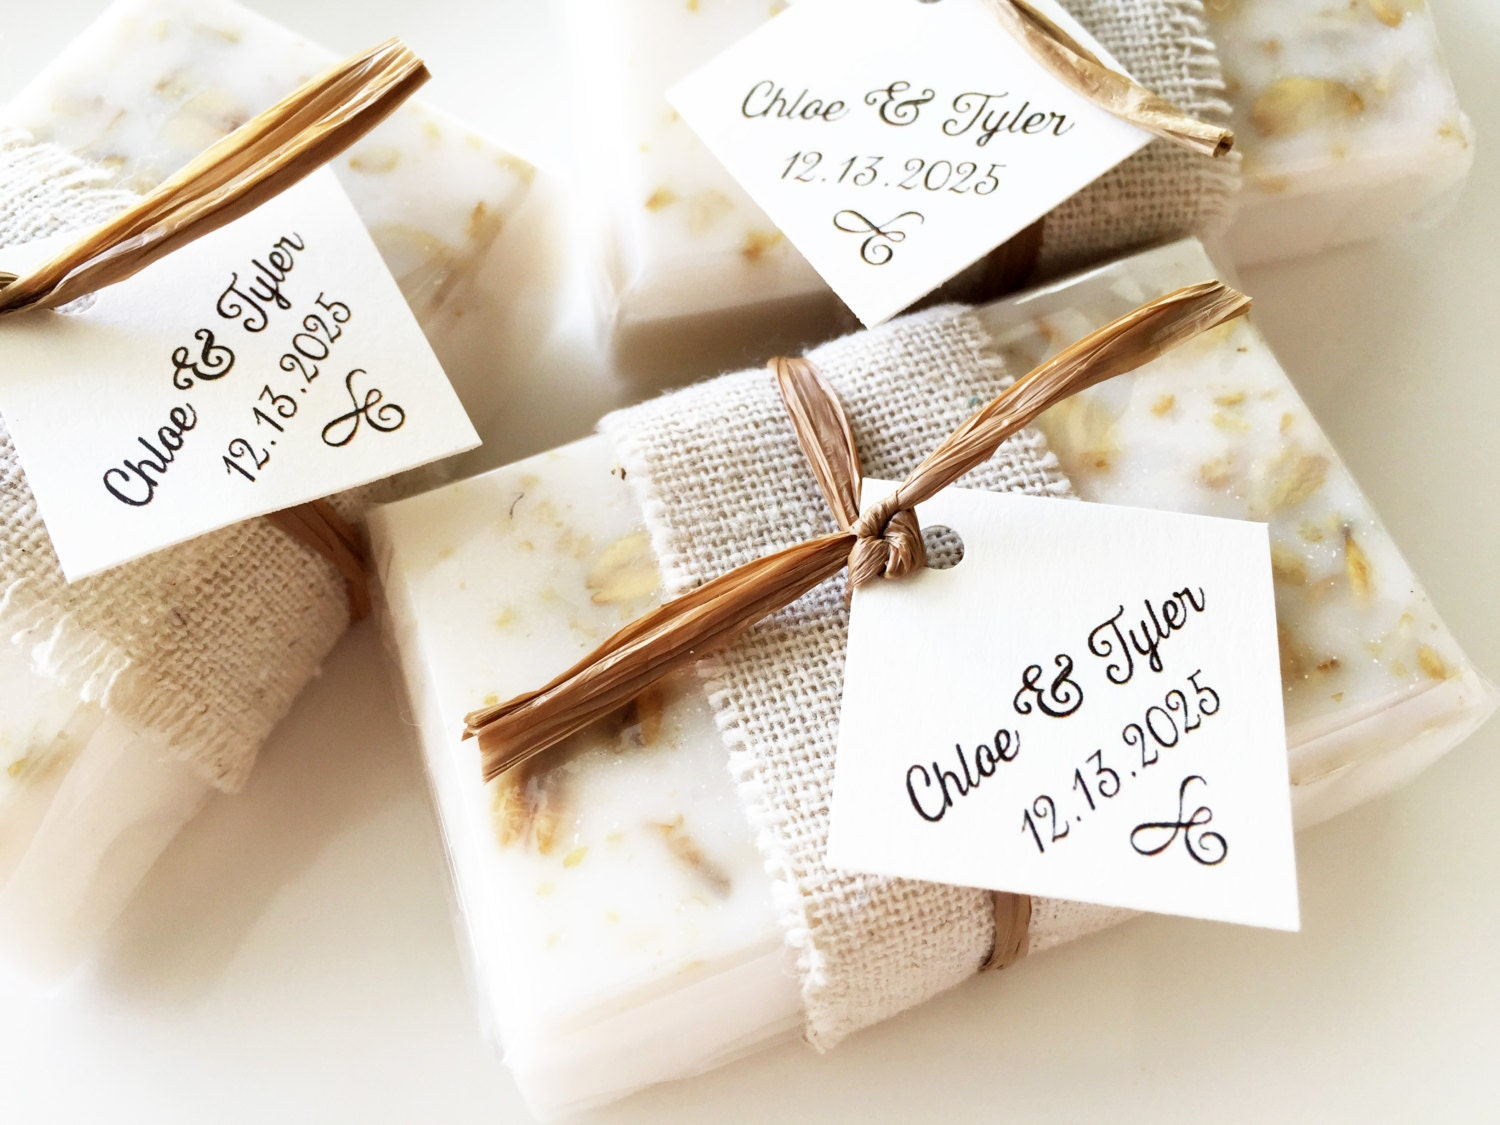 Outstanding Soap Wedding Favors Pictures - The Wedding Ideas ...